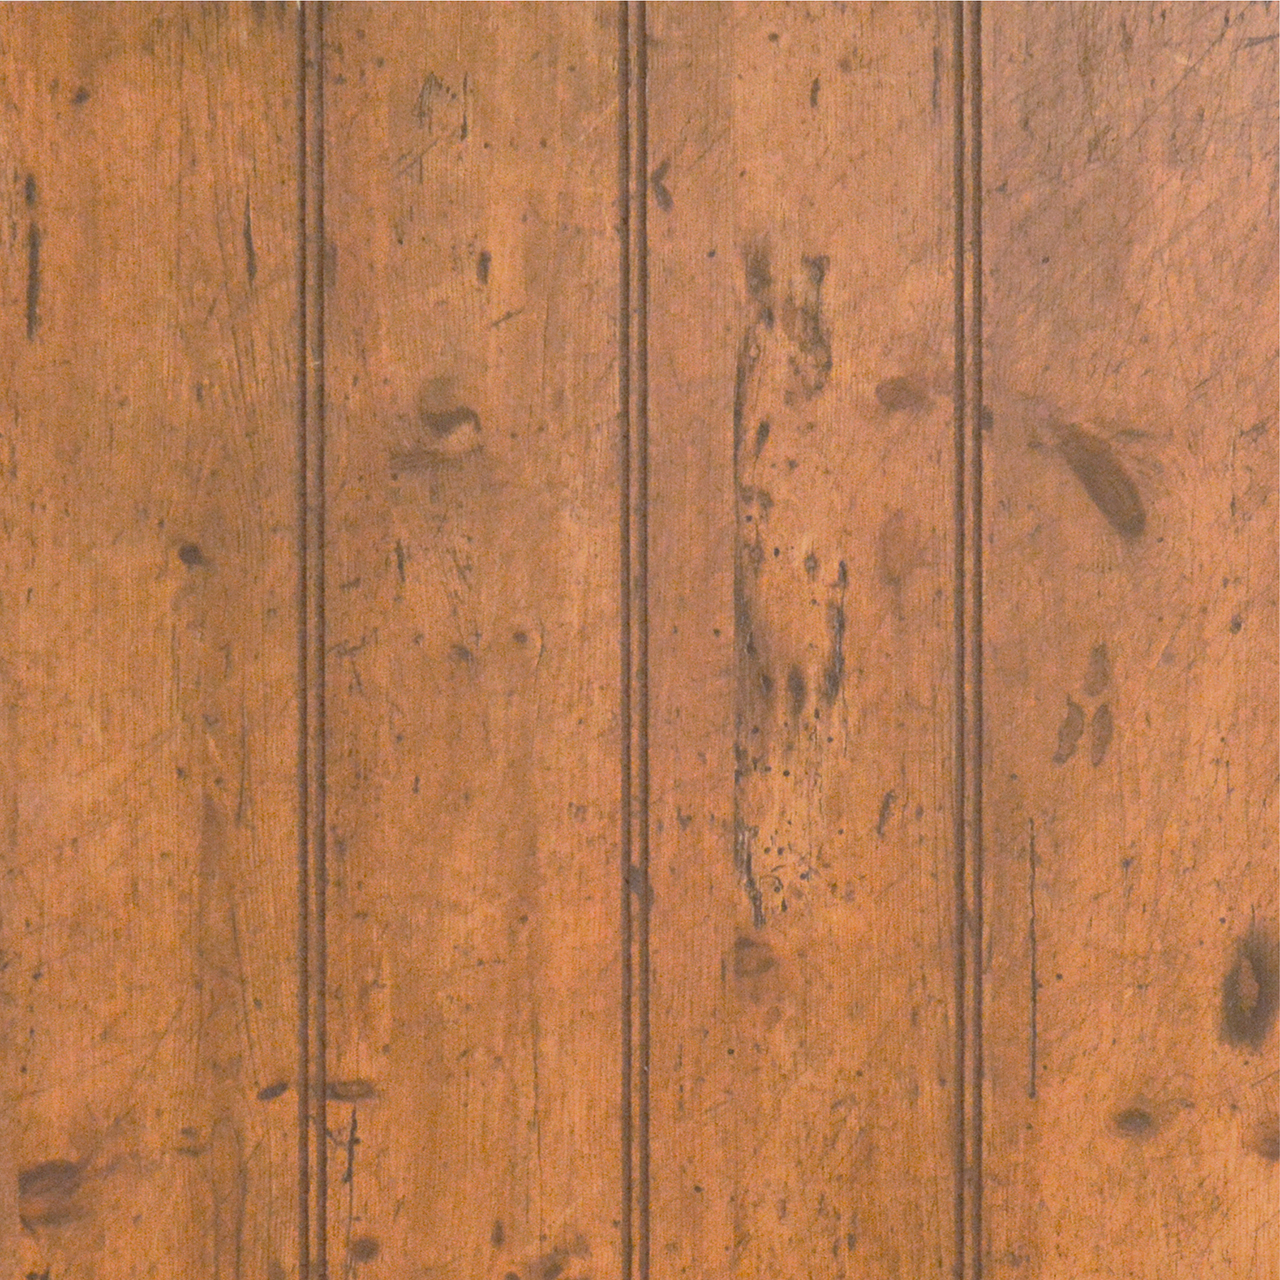 Wood Paneling Rustic Wine Cellar Oak Beadboard Distressed Panels